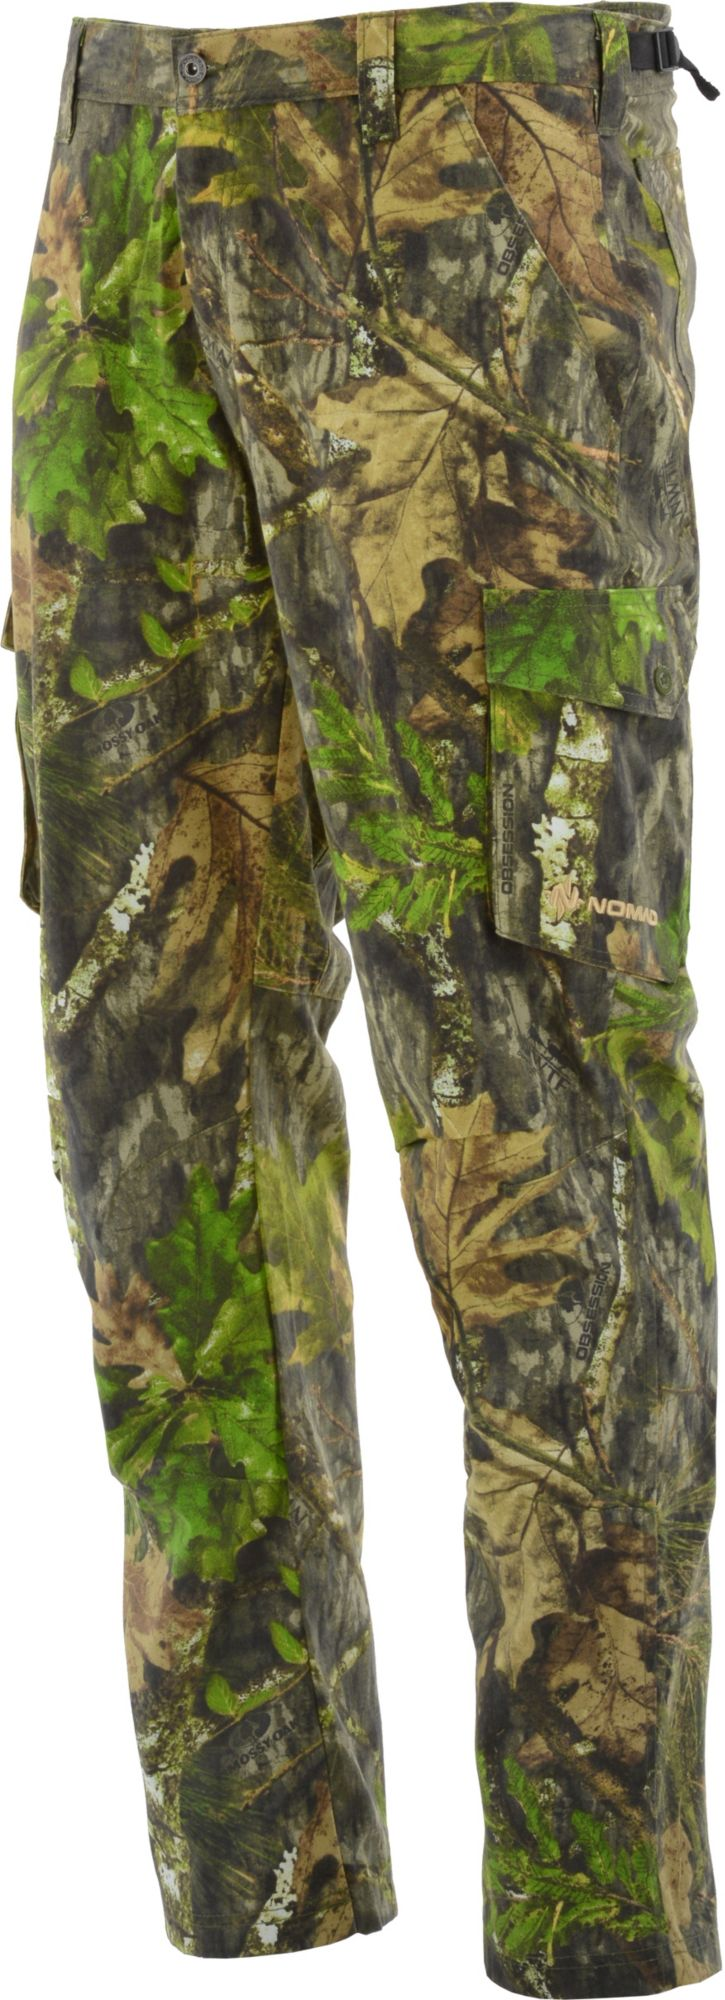 9be647082b0e8 More Info; NOMAD Men's NWTF Turkey Hunting Pants, Size: XL, Brown thumbnail